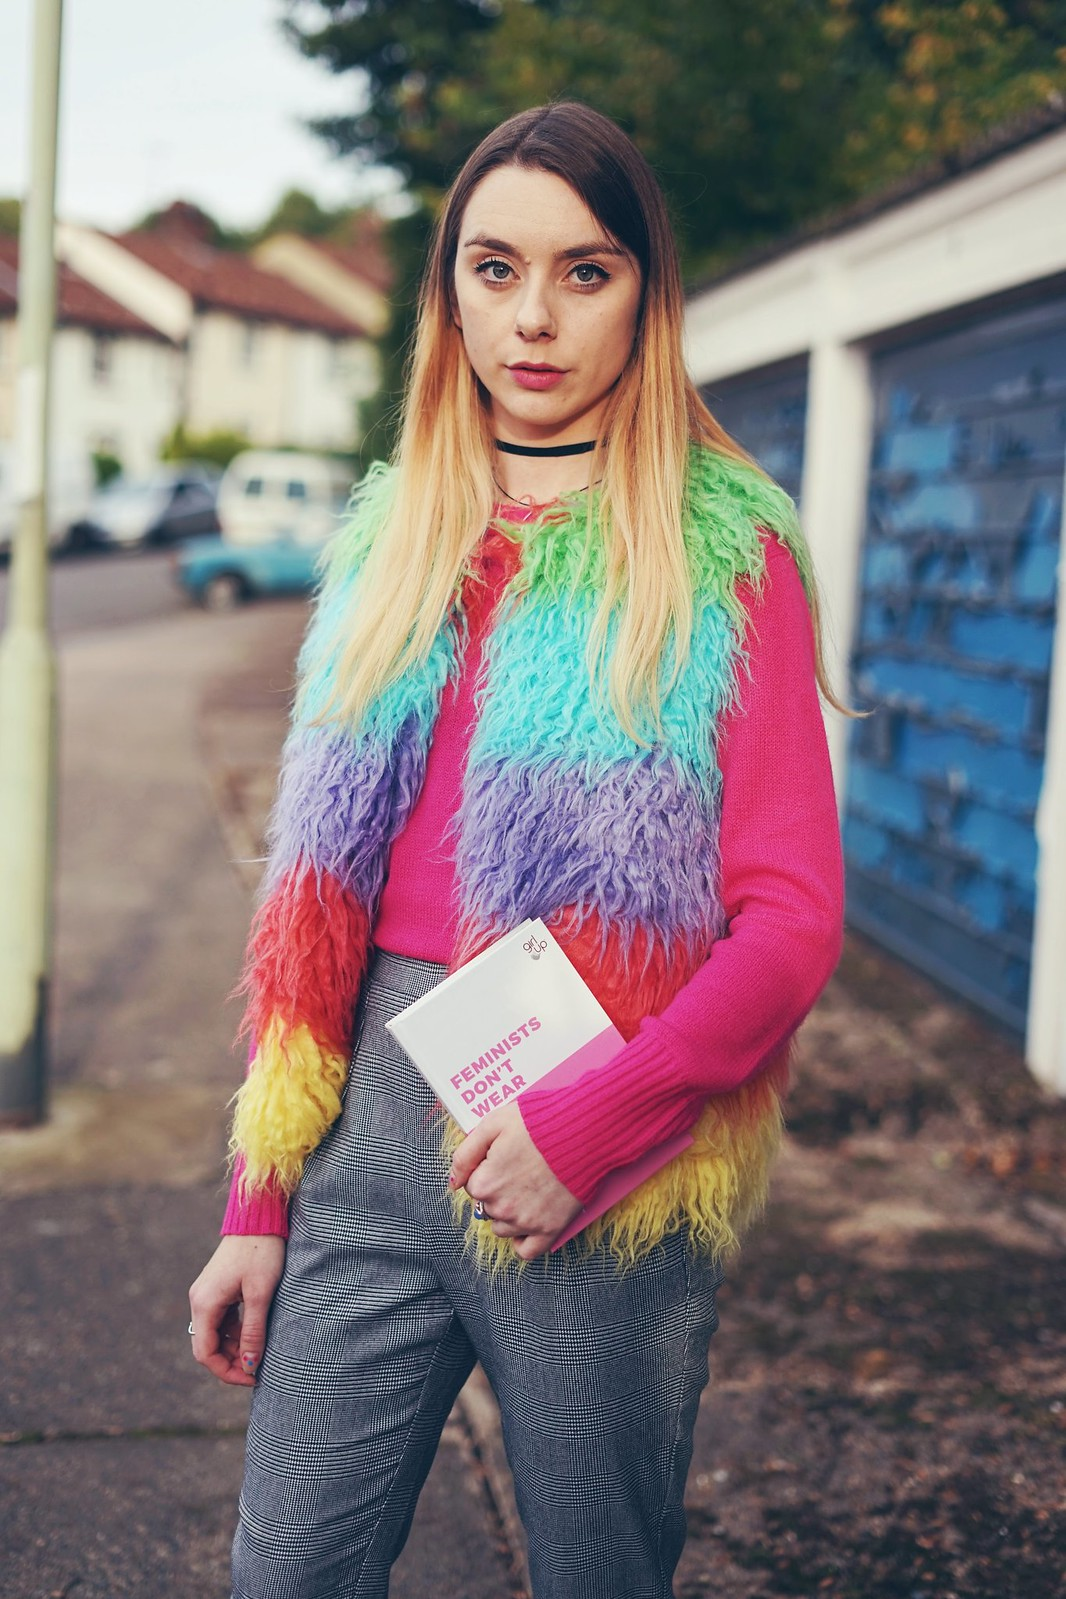 Topshop Rainboy Fluffy Gilet and Feminists Don't Wear Pink